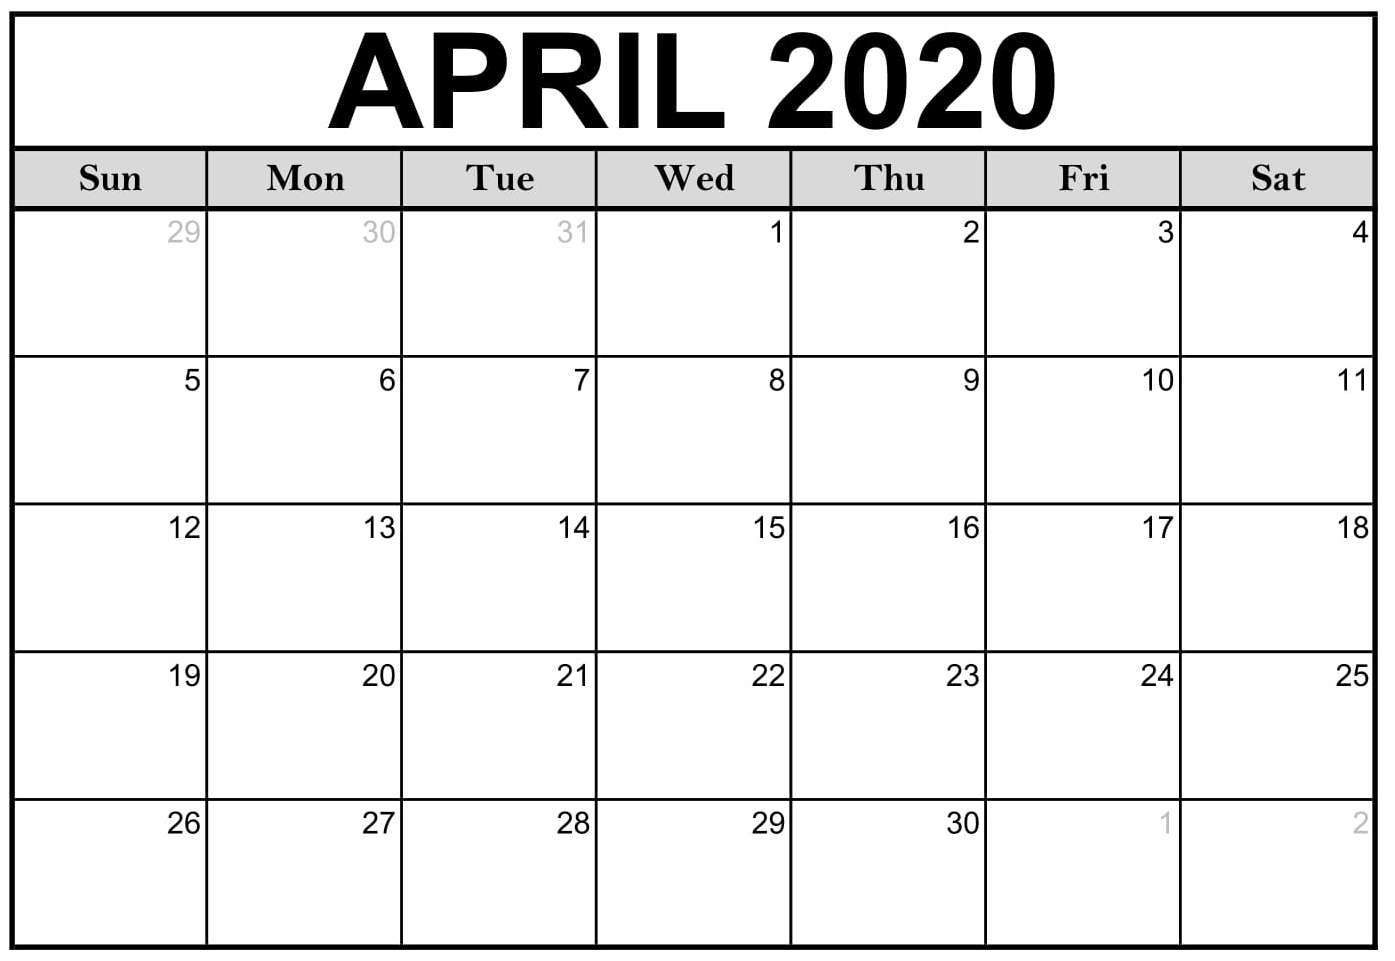 April 2020 Calendar Printable Vertical